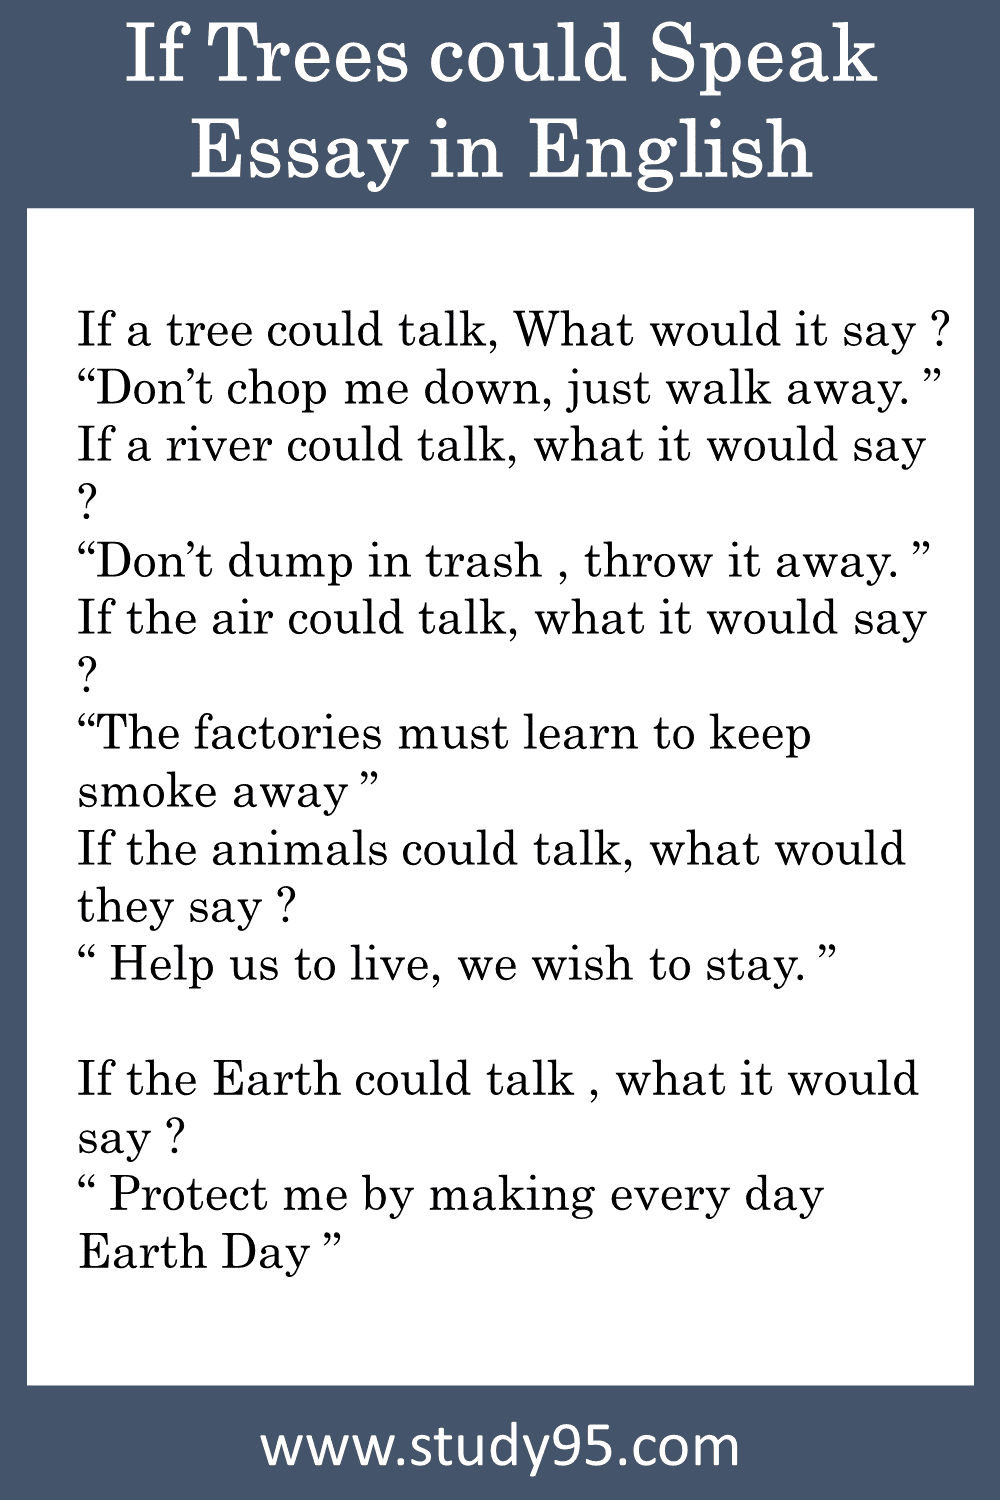 If Trees could Speak Summary